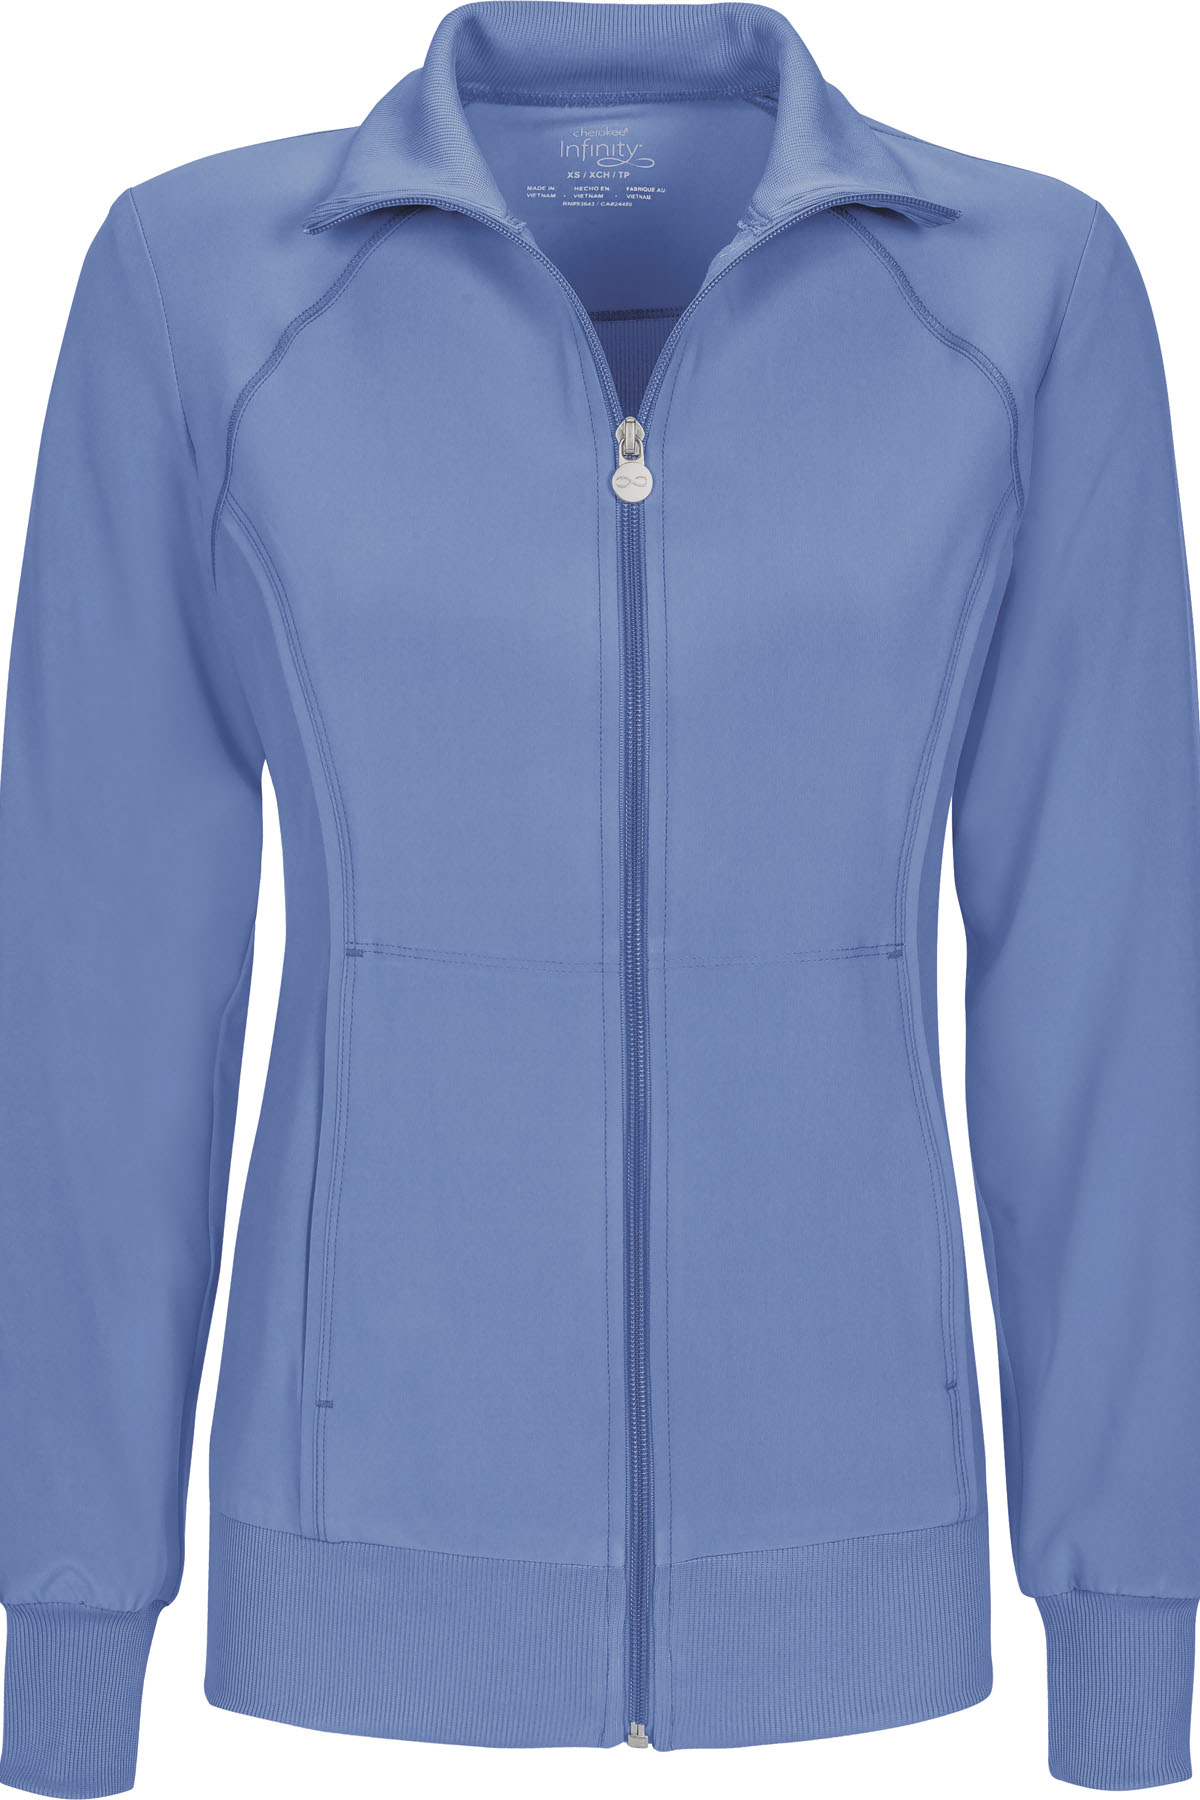 54bc1a40c9c Infinity Zip Front Warm-Up Jacket in Ciel 2391A-CIPS from Scrubs Express